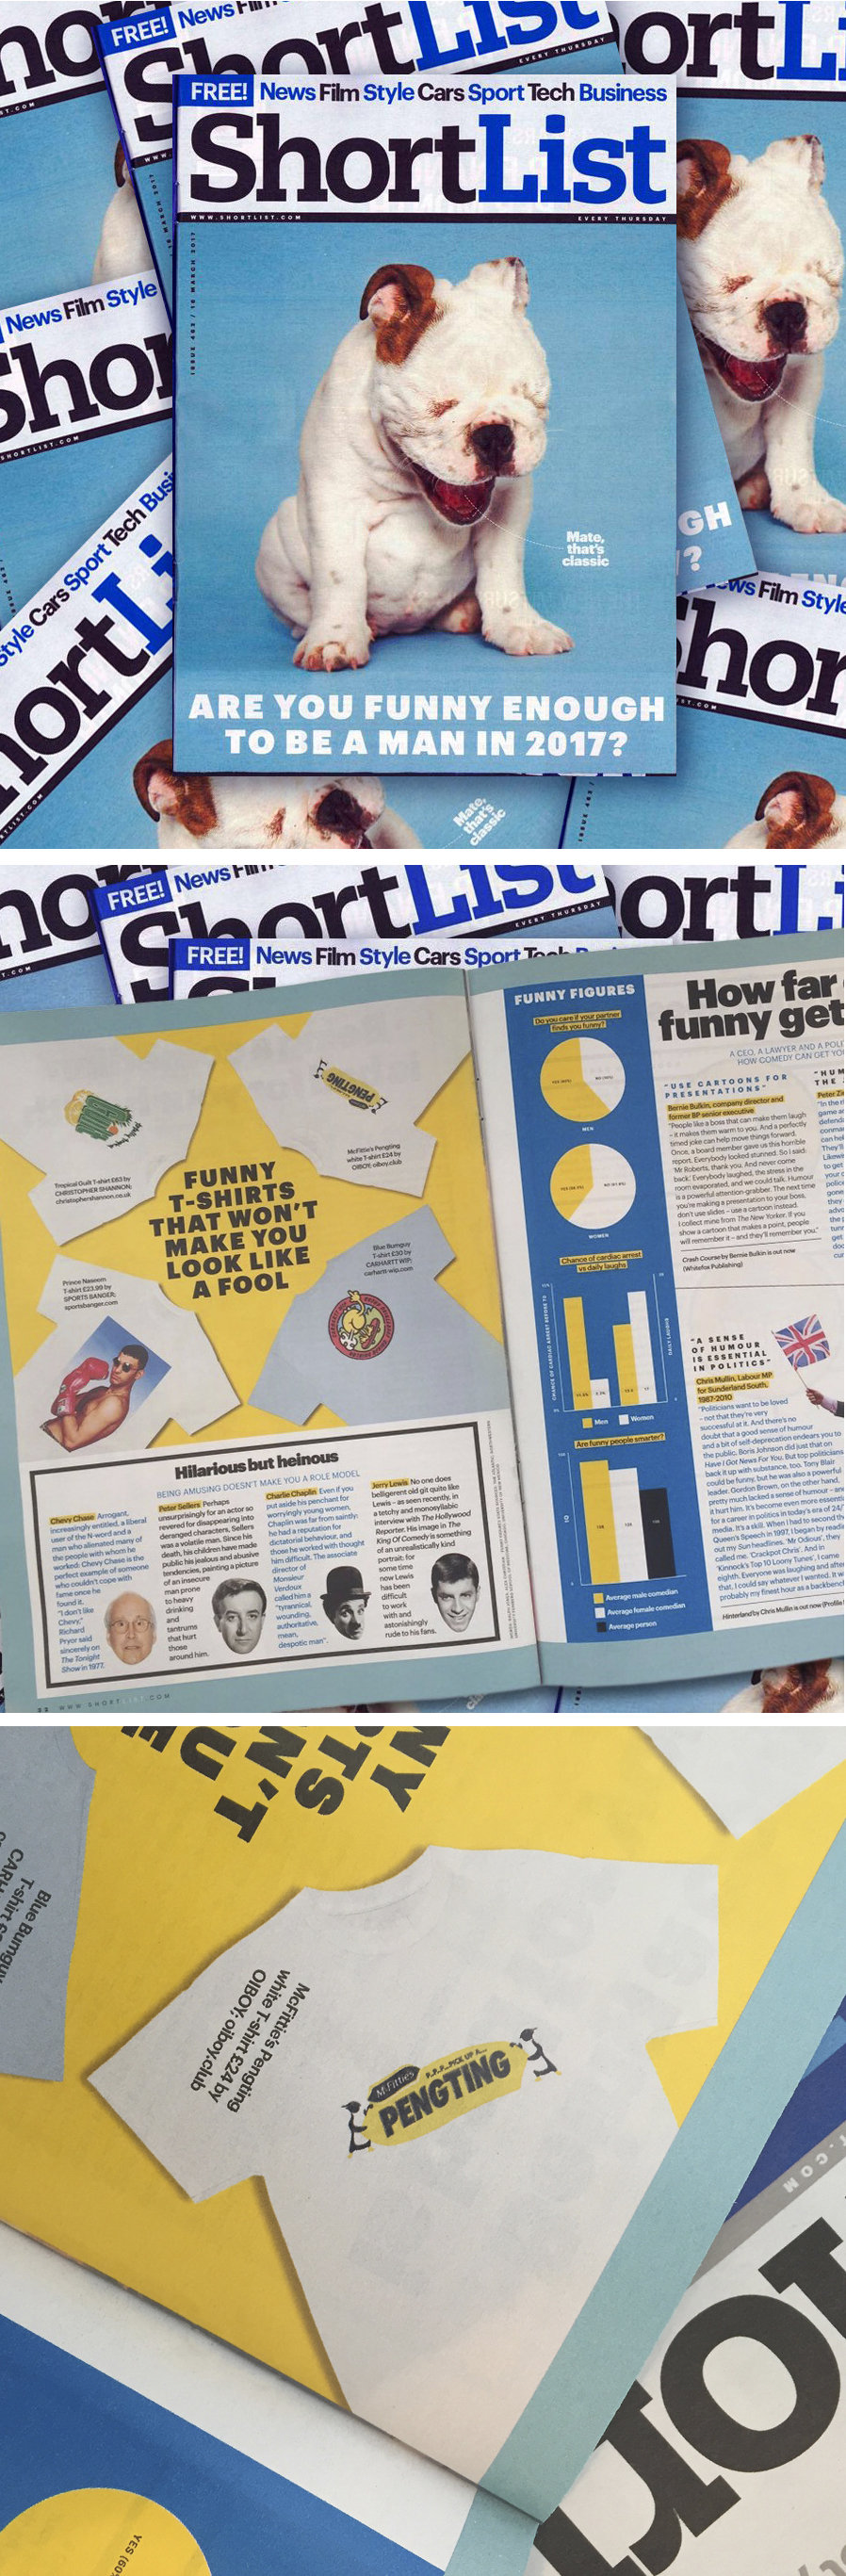 OUR MCFITTIE's PENGTING T-SHIRT WAS FEATURED IN THIS WEEK'S SHORTLIST PRINT MAGAZINE (ISSUE 462 / 16TH MARCH 2017) ALONG SIDE CHRISTOPHER SHANNON, SPORTS BANGER AND CARHARTT.